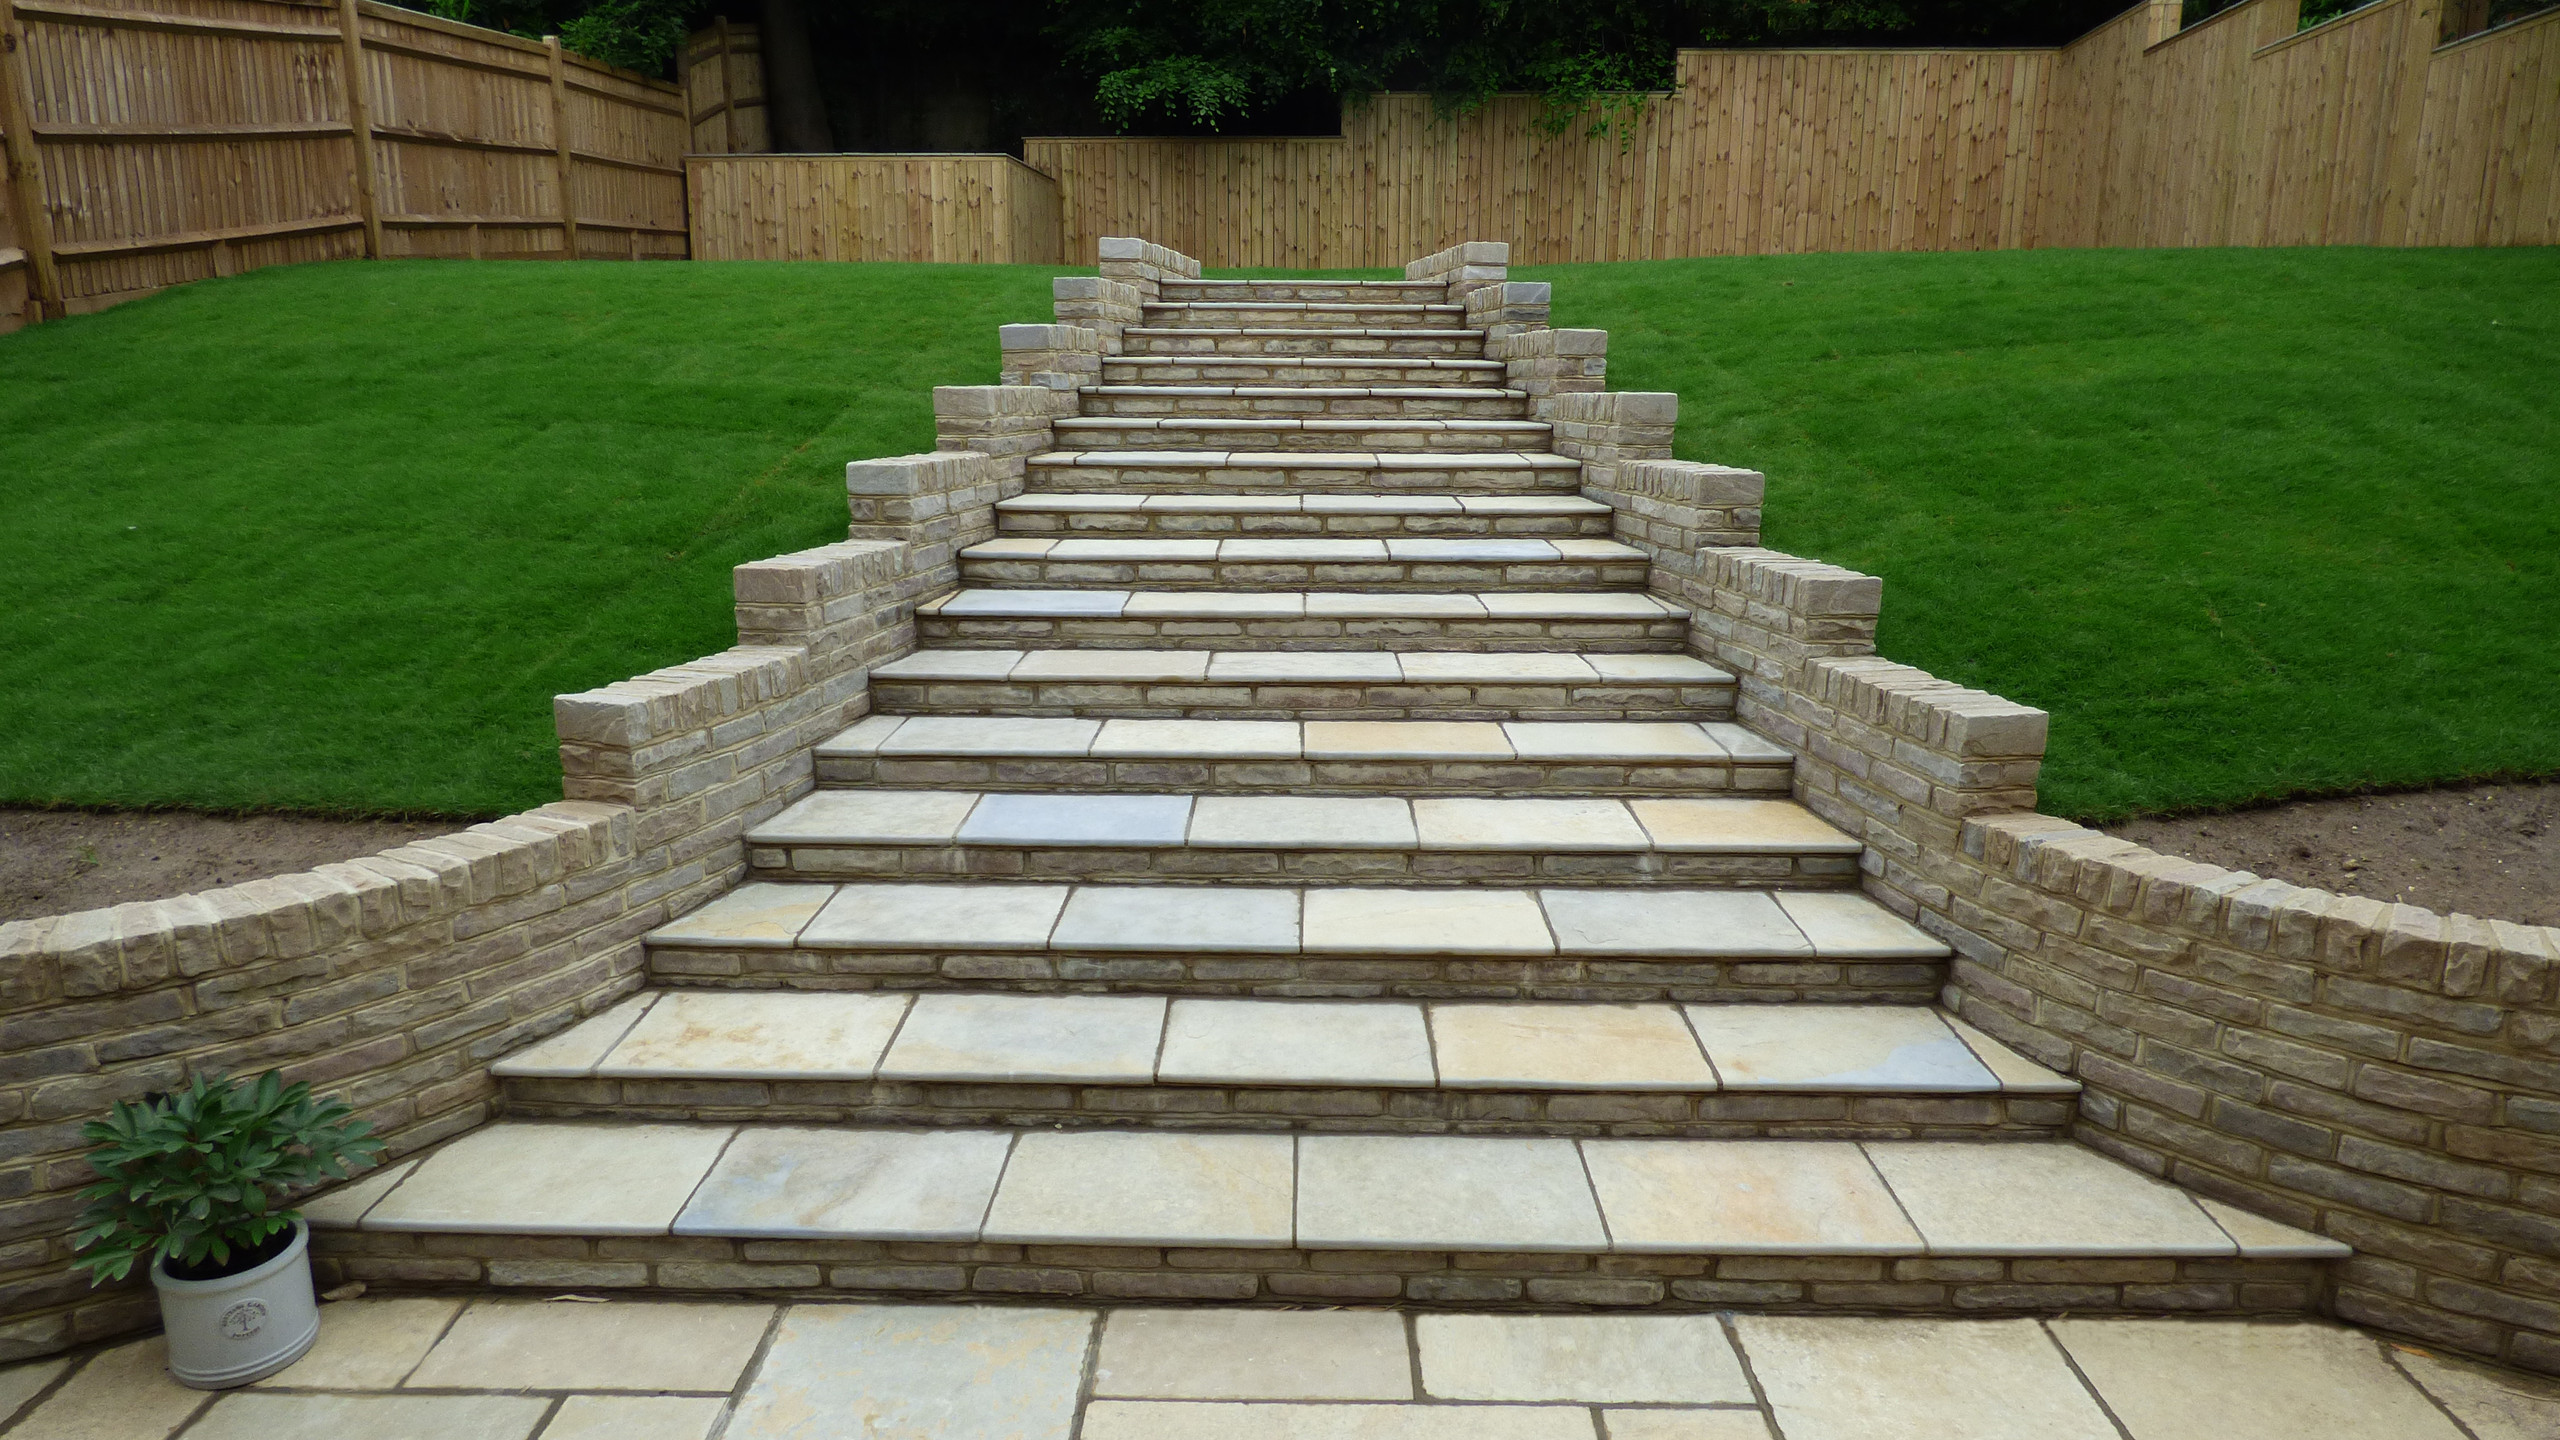 Brett Limestone patio and steps, with tumbled sandstone walling, timber clad concrete retaining walls and new lawn.